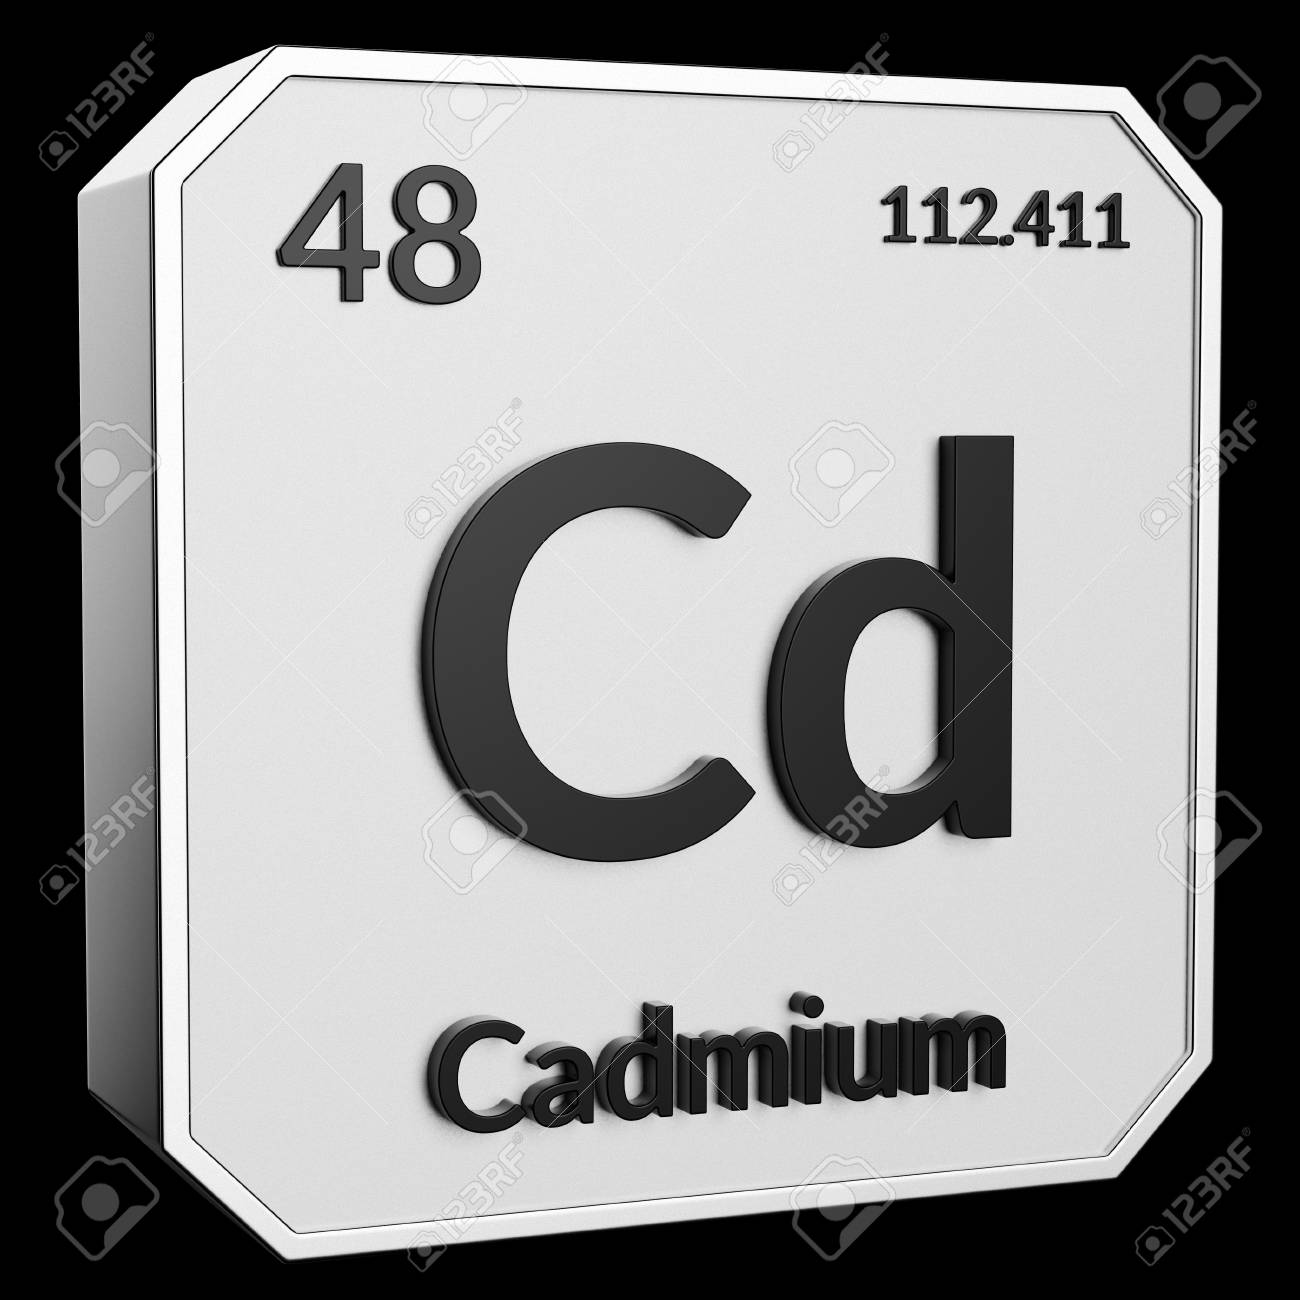 3d Text Of Chemical Element Cadmium Its Atomic Weight Periodic